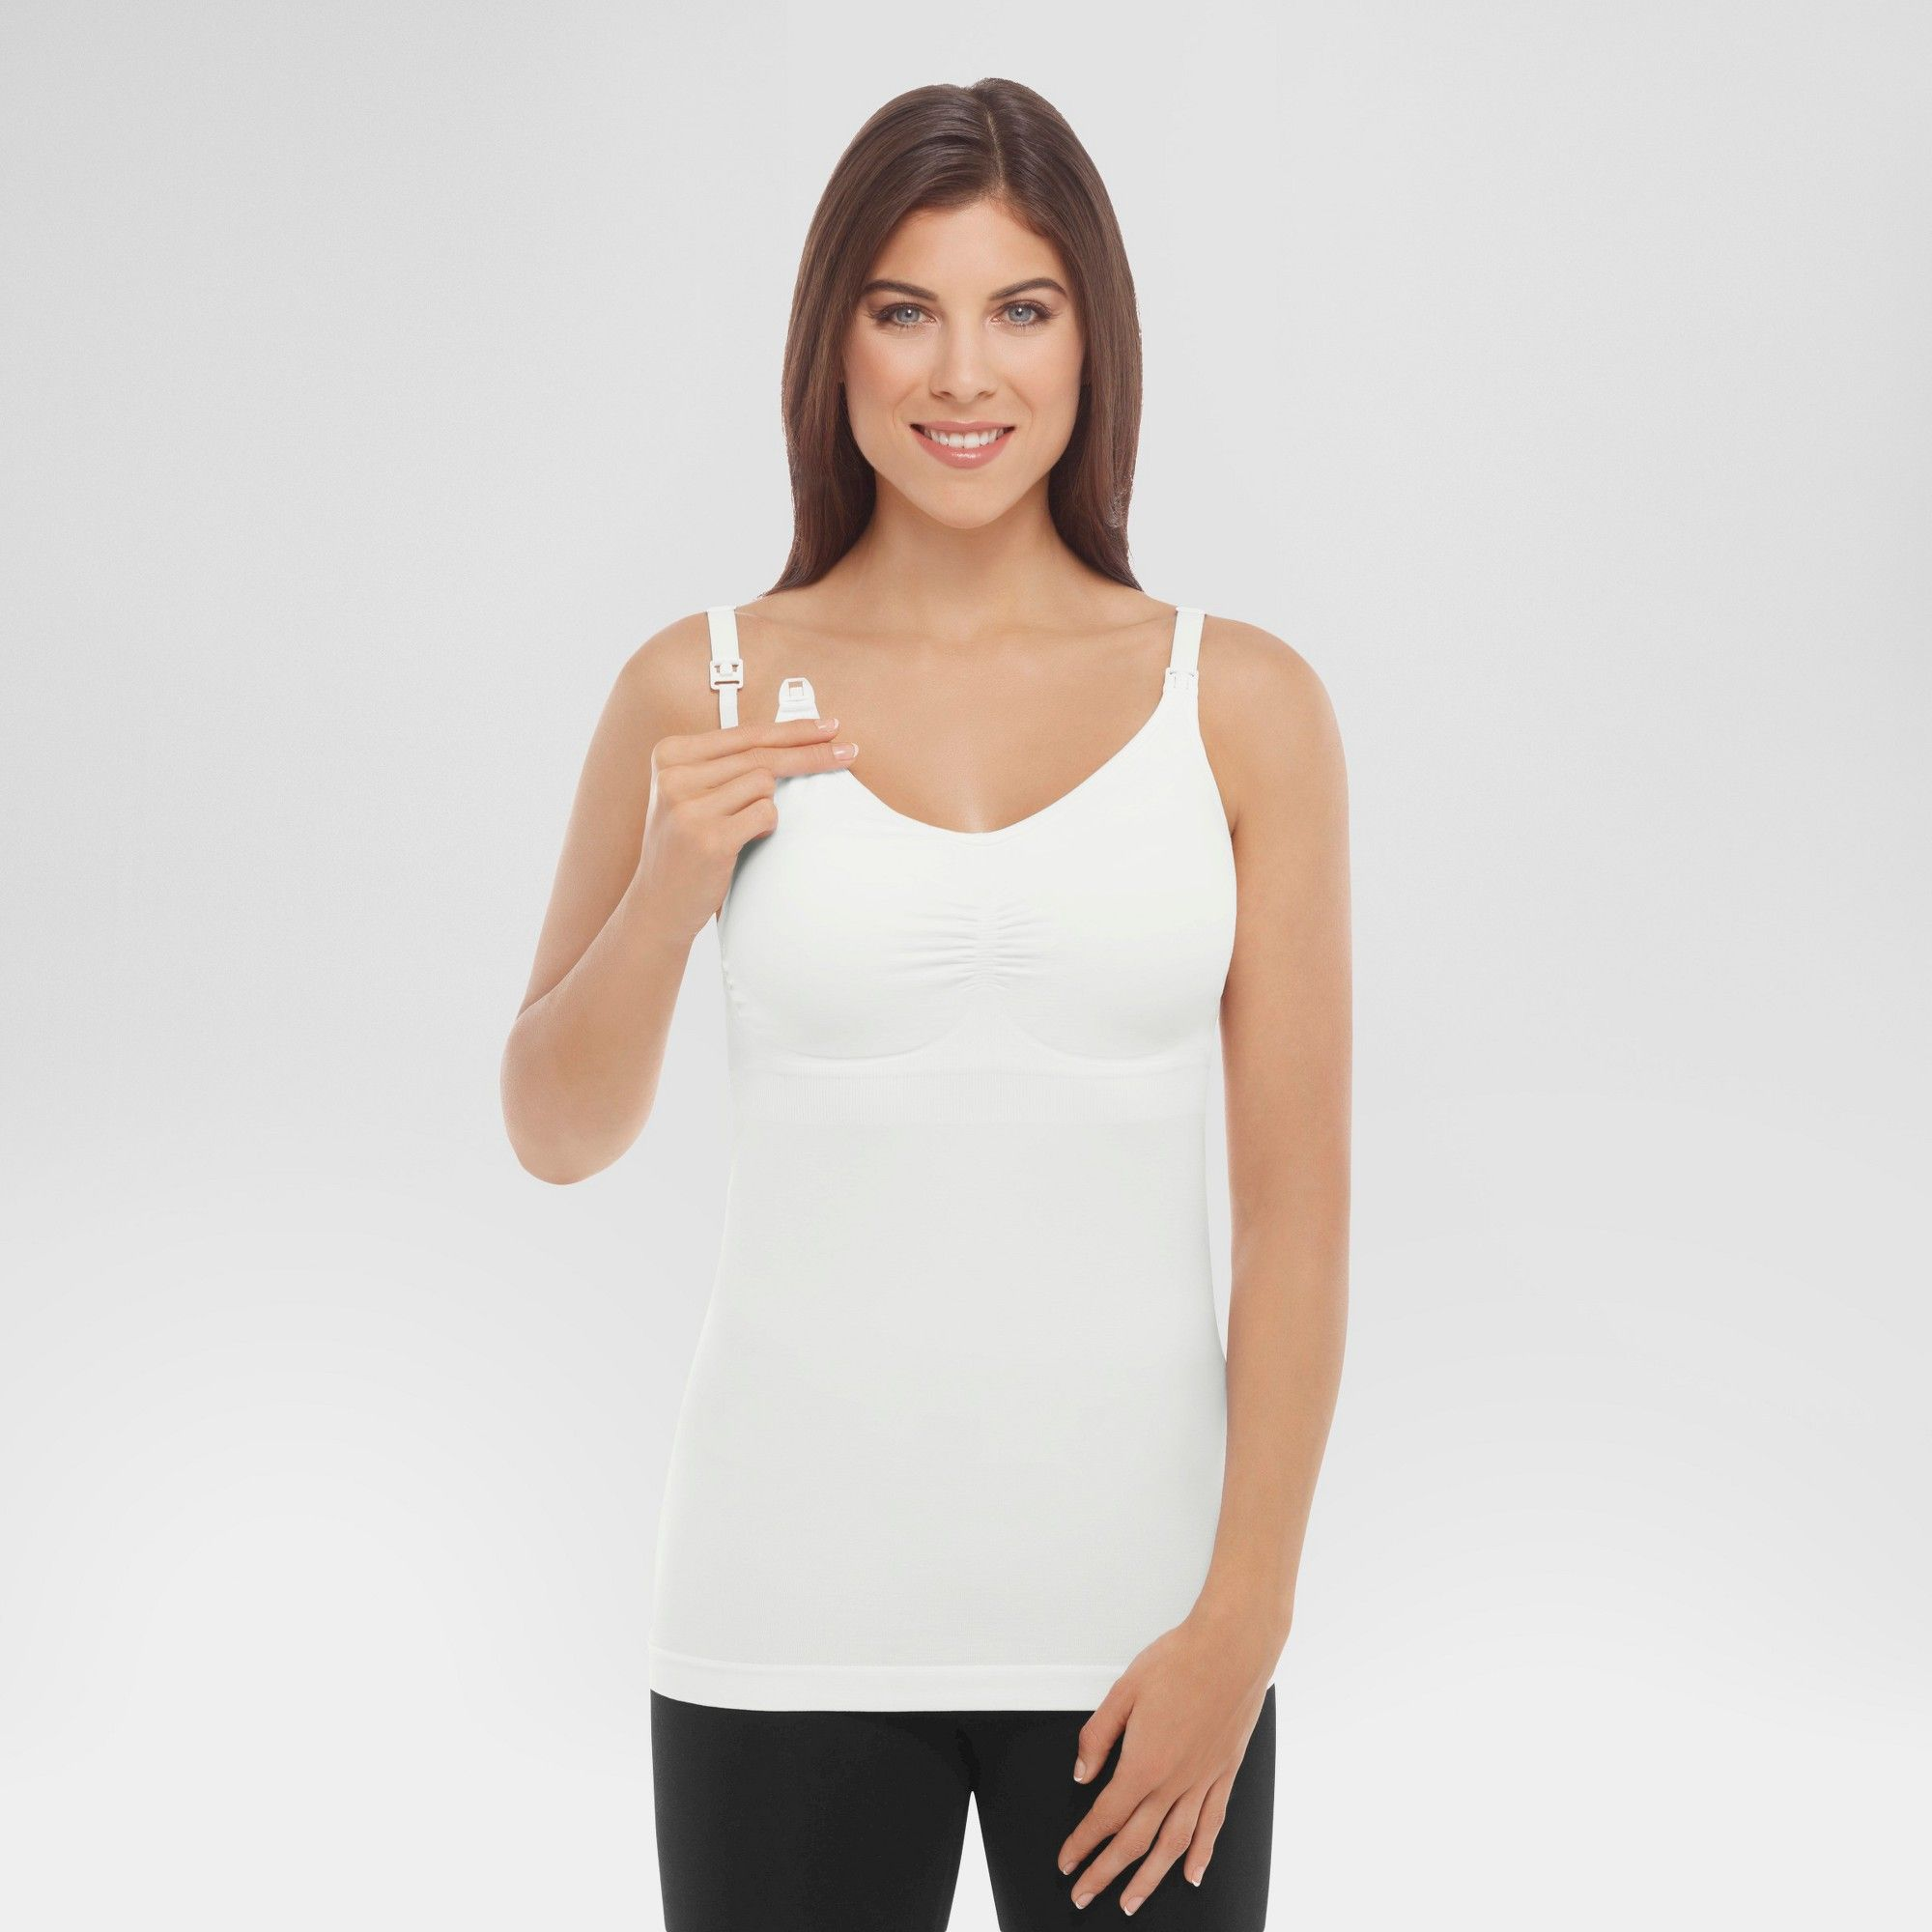 00685fe4a5ed1 Medela Women s Slimming Nursing Cami with Removable Pads - White XL ...